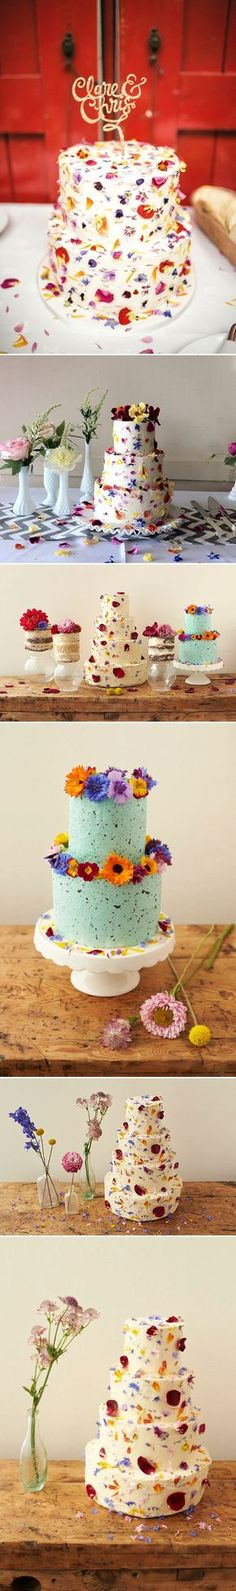 Edible flowers - Wedding cakes decorated with edible petals | colourful wedding cakes | fun wedding cakes | Quirky Wedding Cakes | Cake by http://beesbakery.co.uk/#sthash.BPsDaL20.dpbs | http://www.rockmywedding.co.uk/decorating-cakes-with-edible-petals/